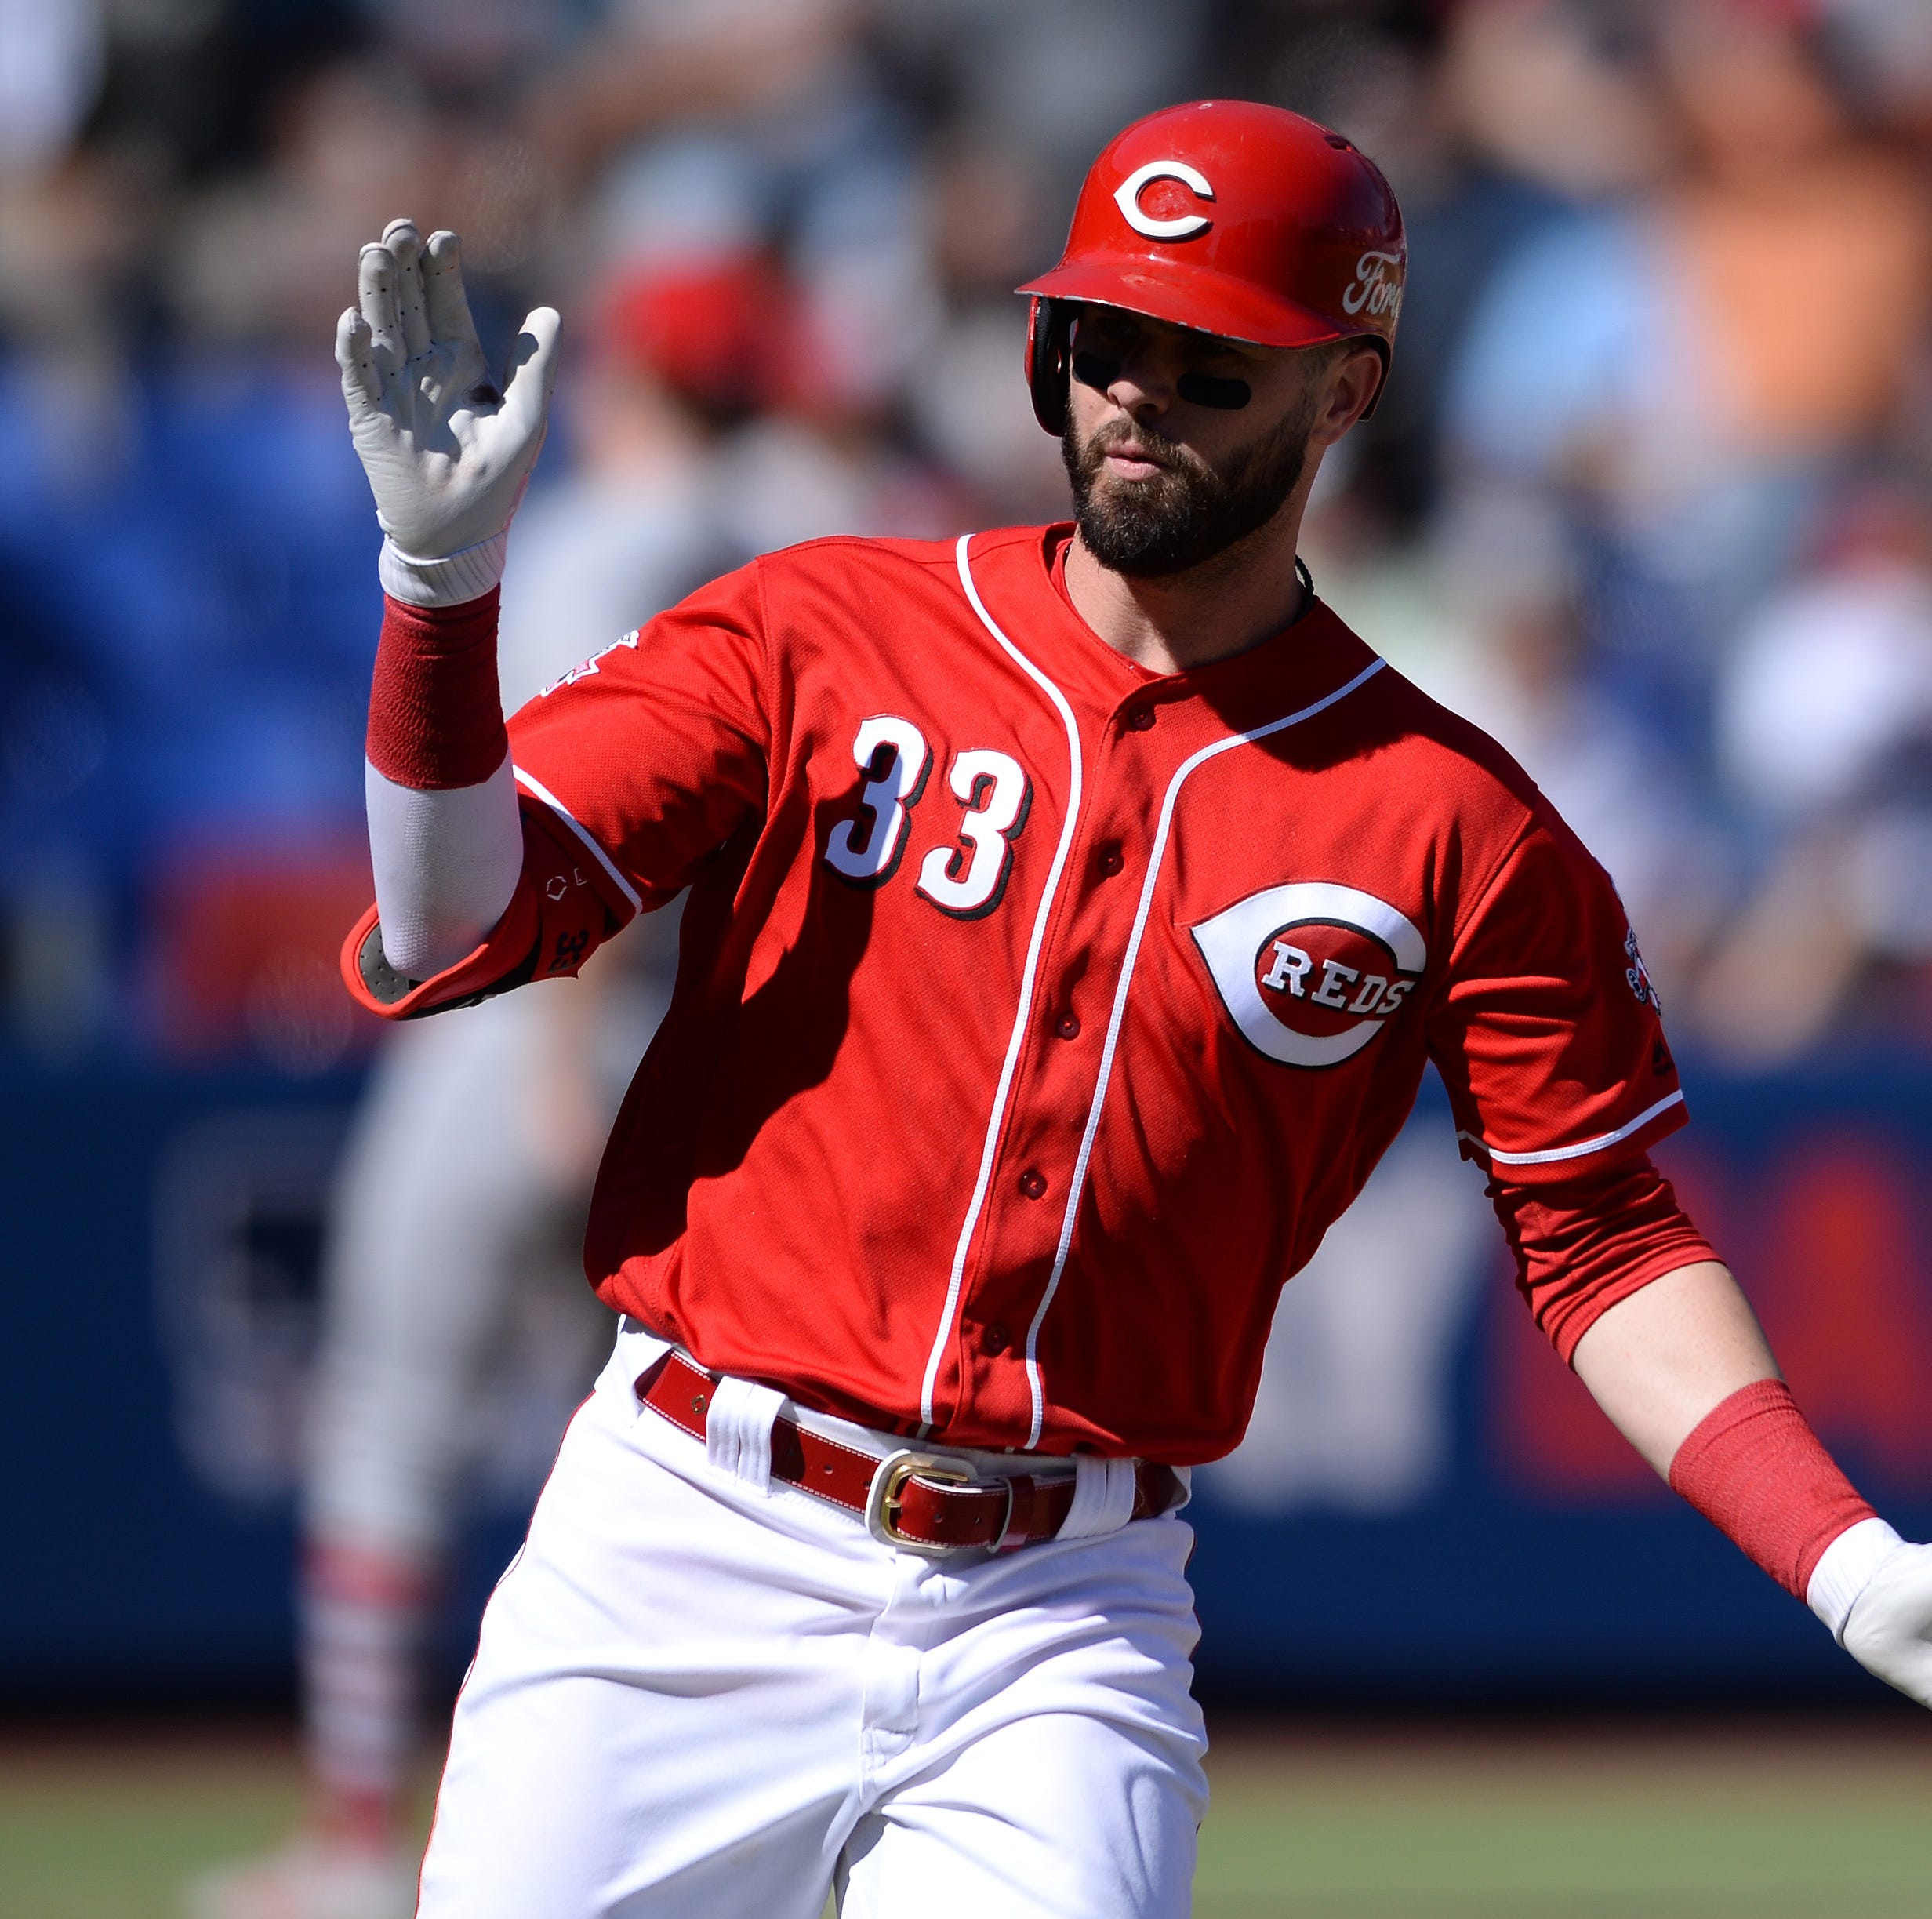 Joey Votto thinks Jesse Winker can be one of the best hitters in the National League